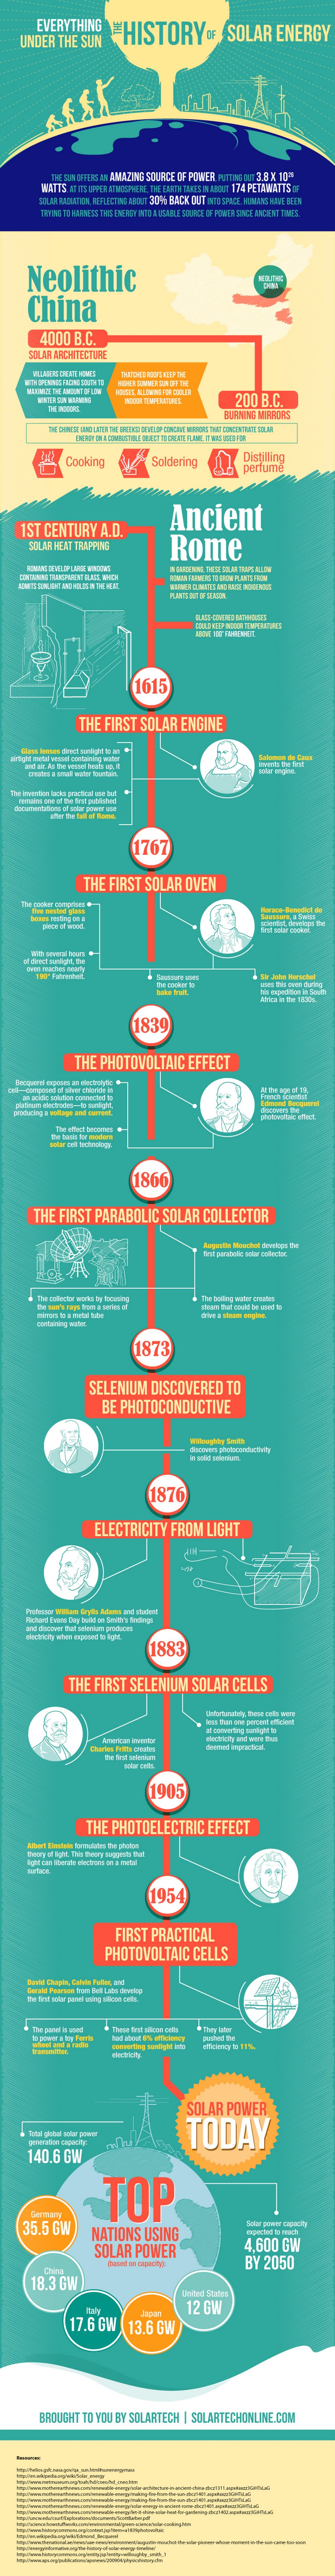 graphic-solartech-solar-power-history